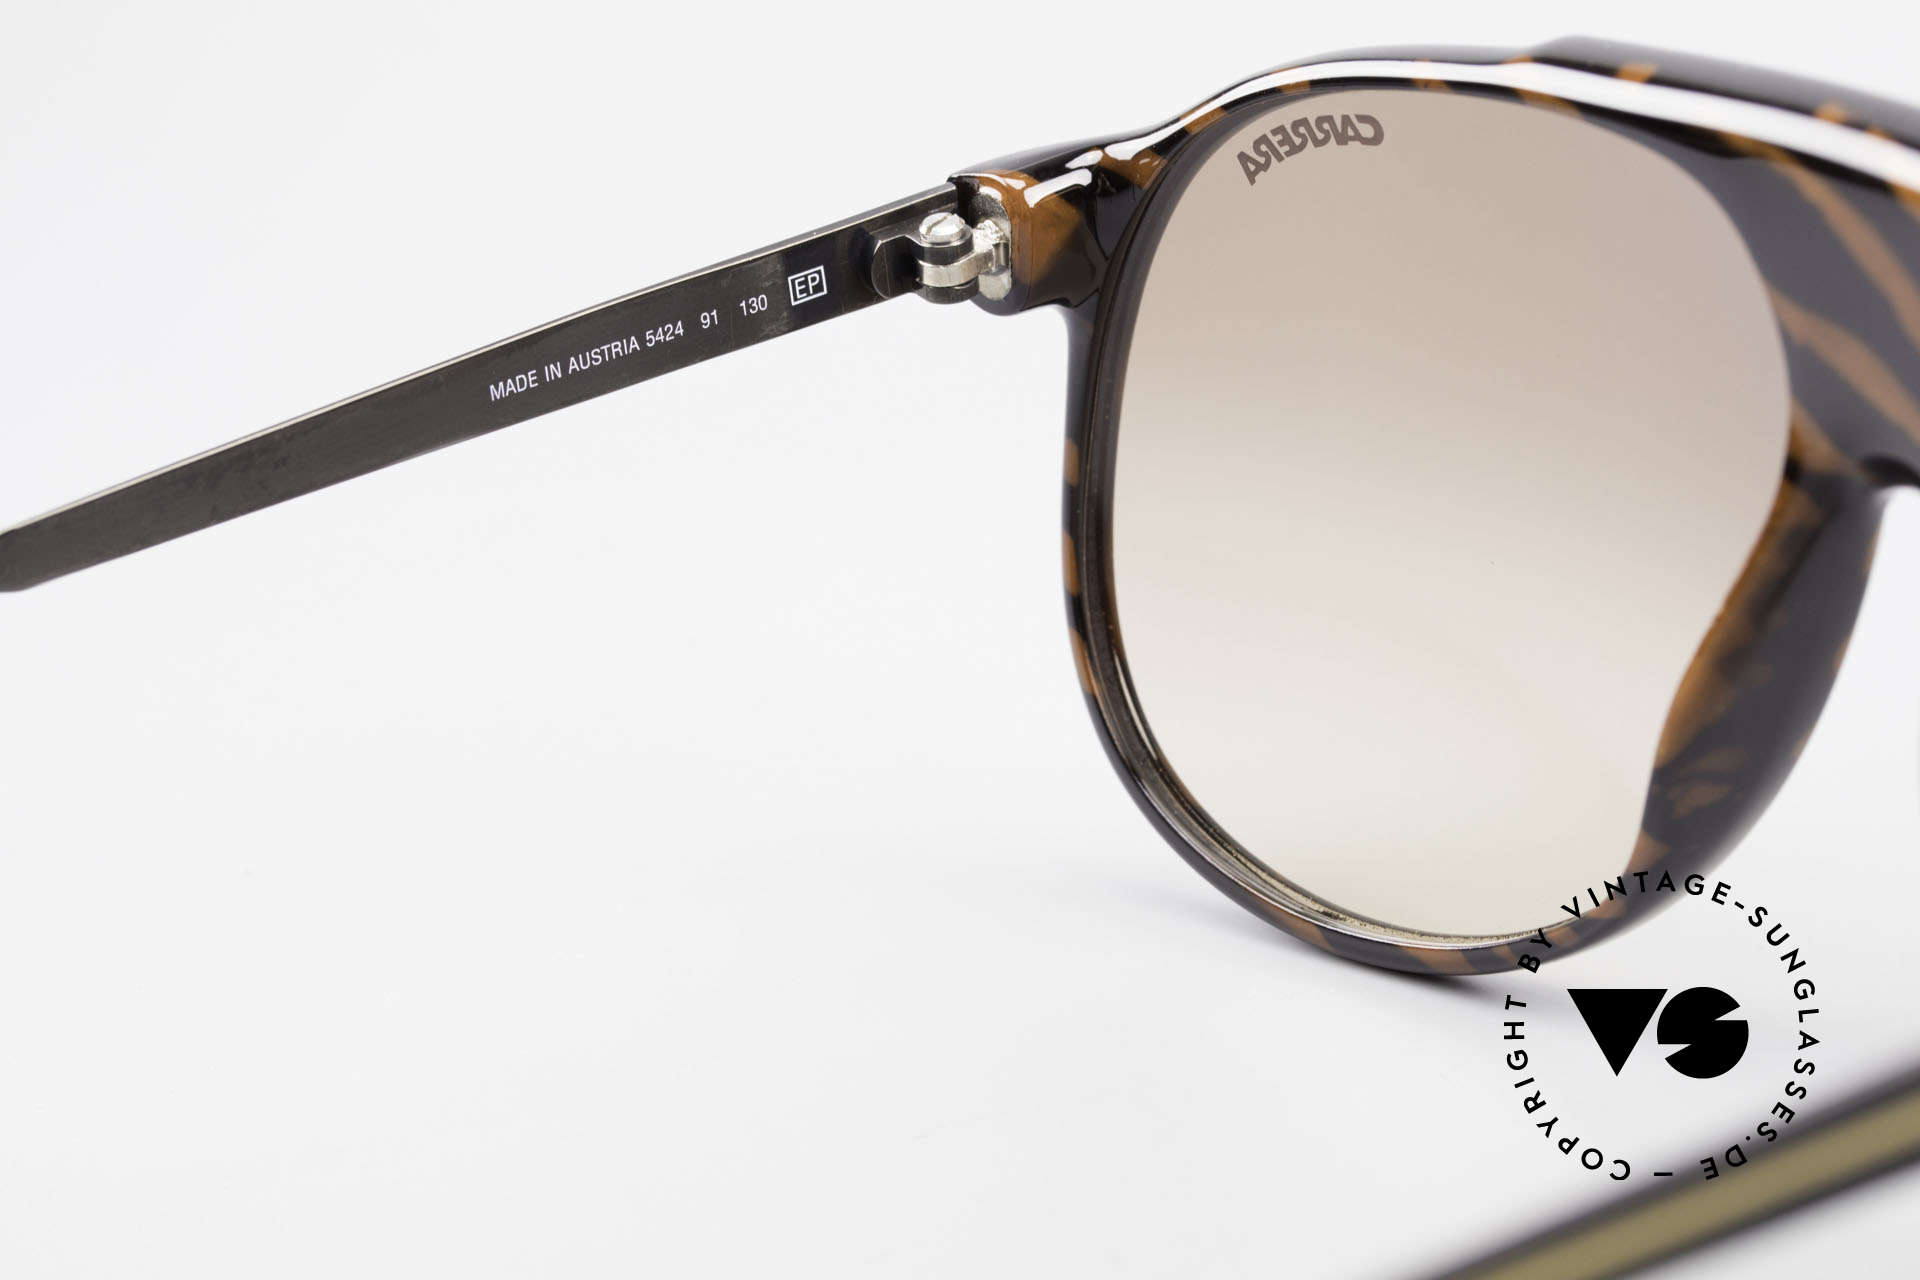 Carrera 5424 Aviator Sports Sunglasses 80's, new old stock (as all our vintage Carrera sunglasses), Made for Men